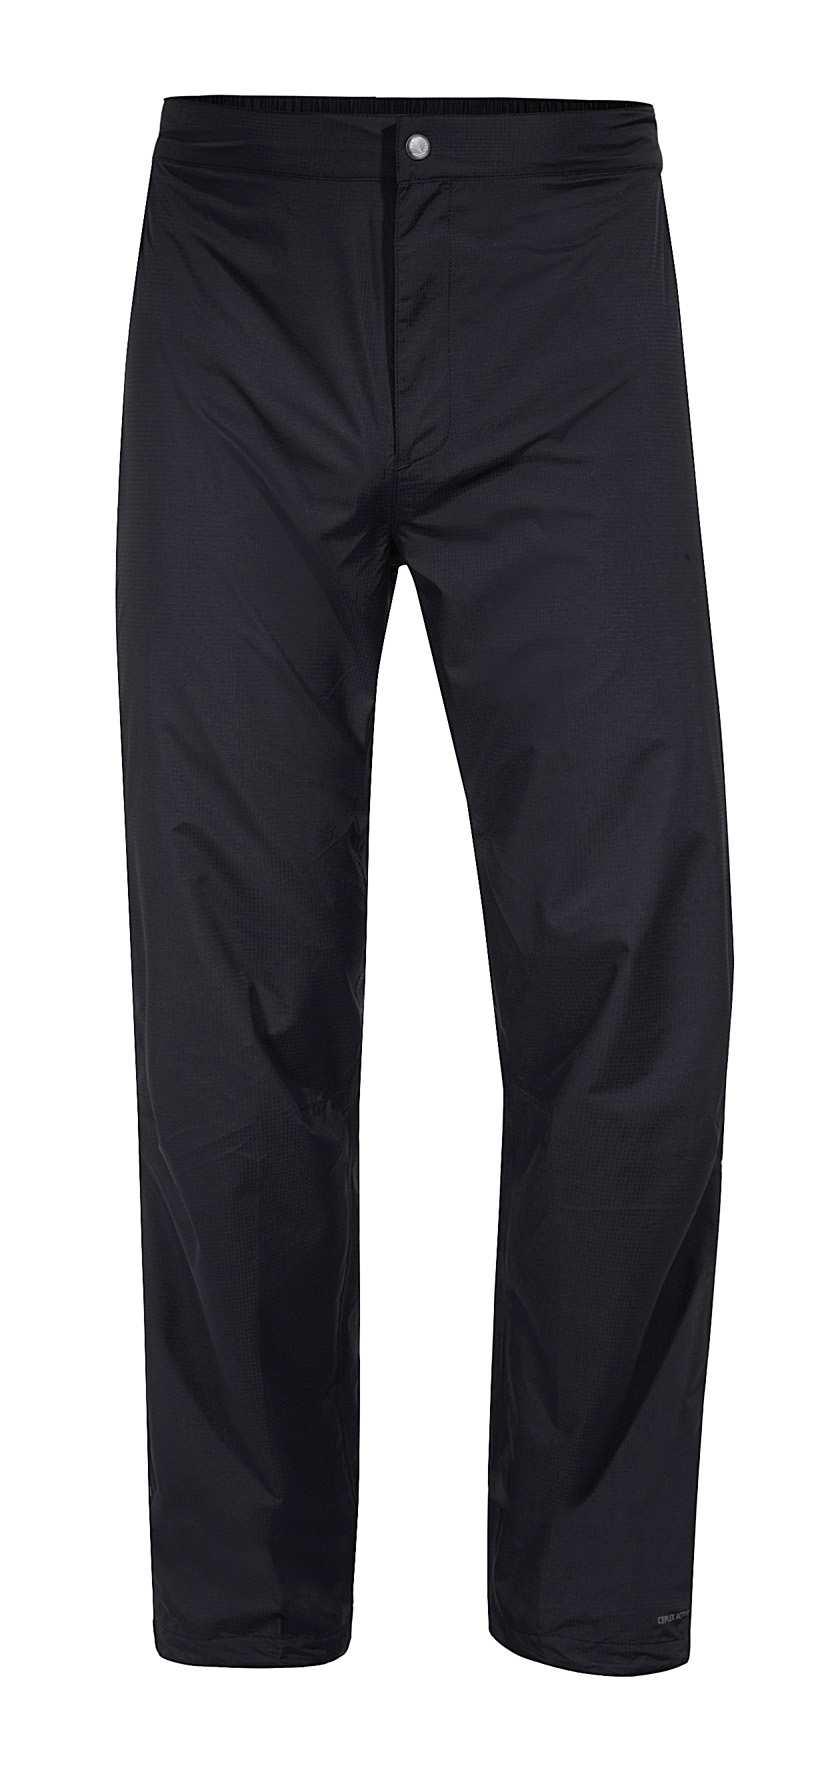 VAUDE Men´s Yaras Rain Pants black Größe S-Short - schneider-sports